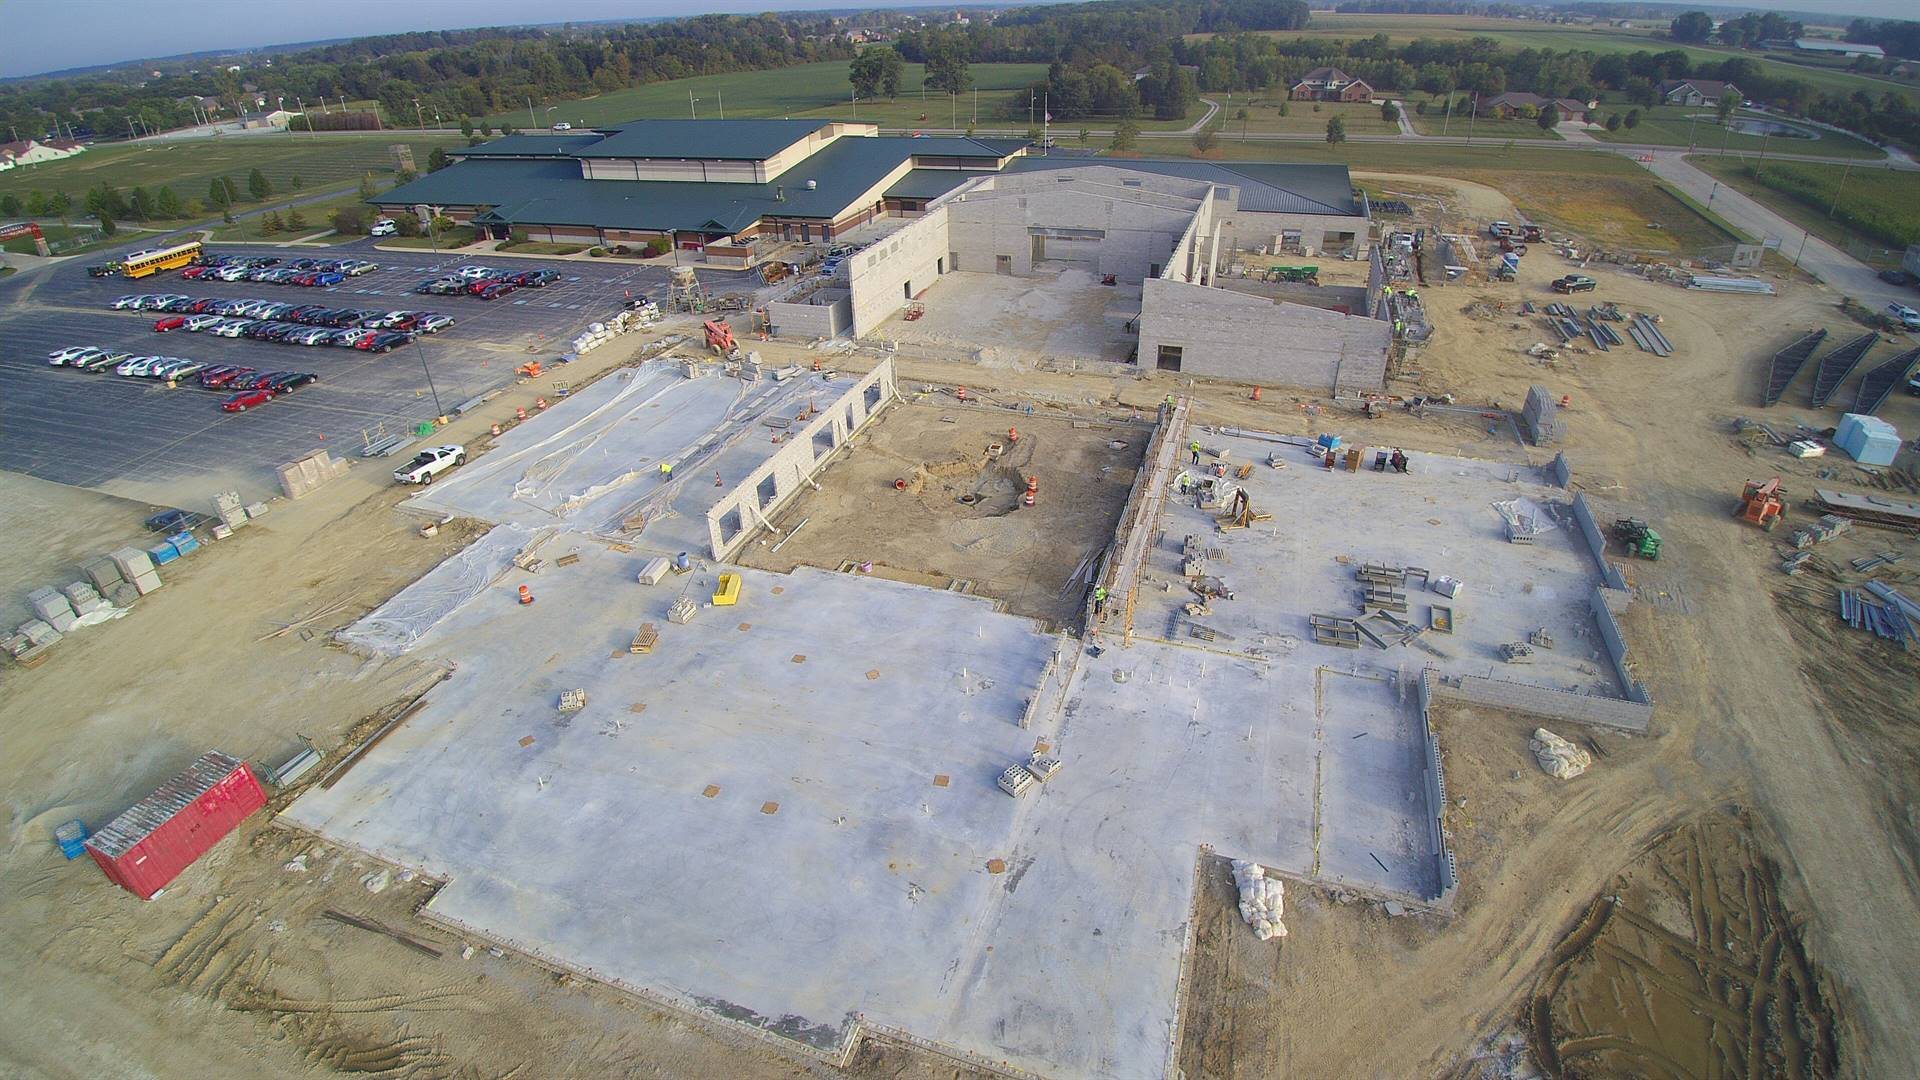 Aeriel View of New K-6 Building During Construction Taken 9-11-2019